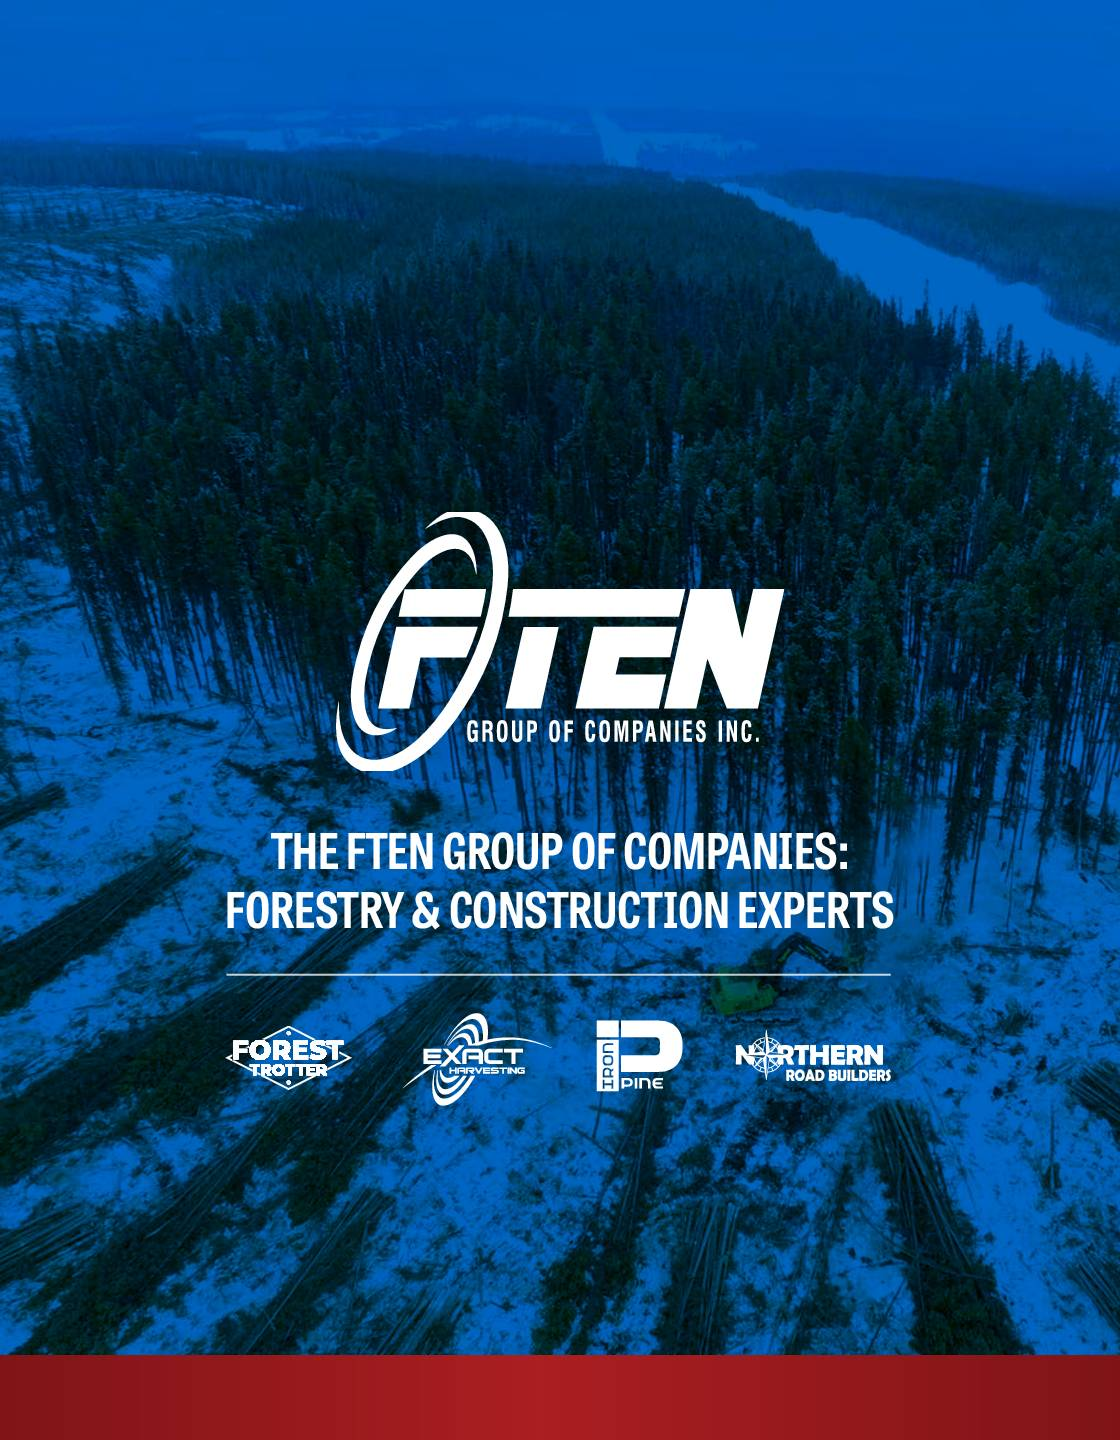 Ften Group of Companies – Overview of Companies